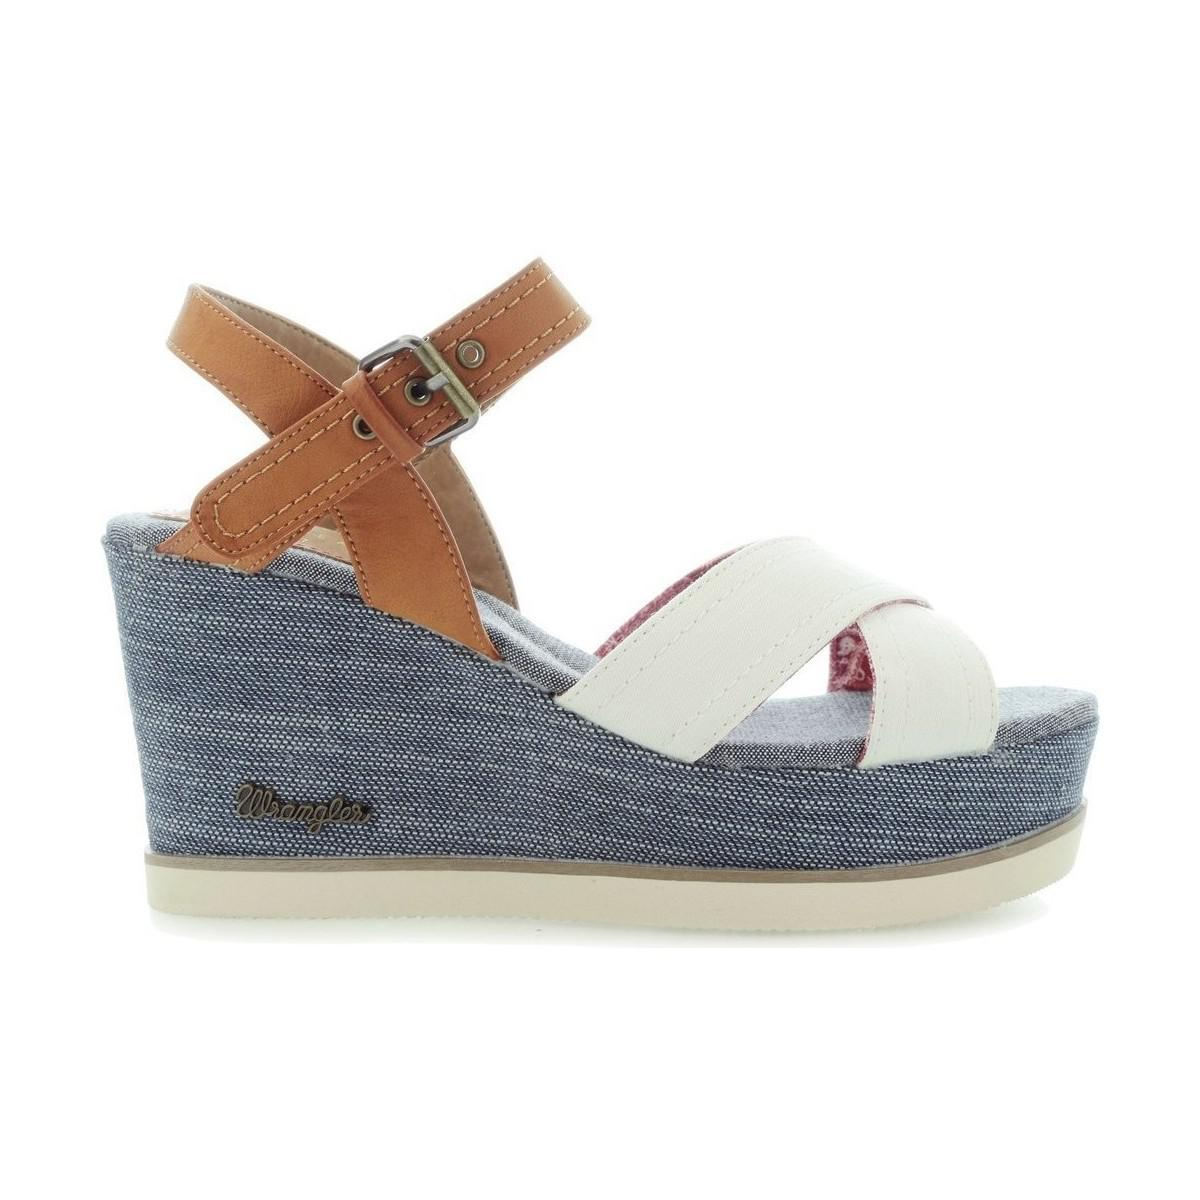 505036efeeb8 Wrangler Jeena Indigo Cross Wl171680 Women s Sandals In Blue in Blue ...